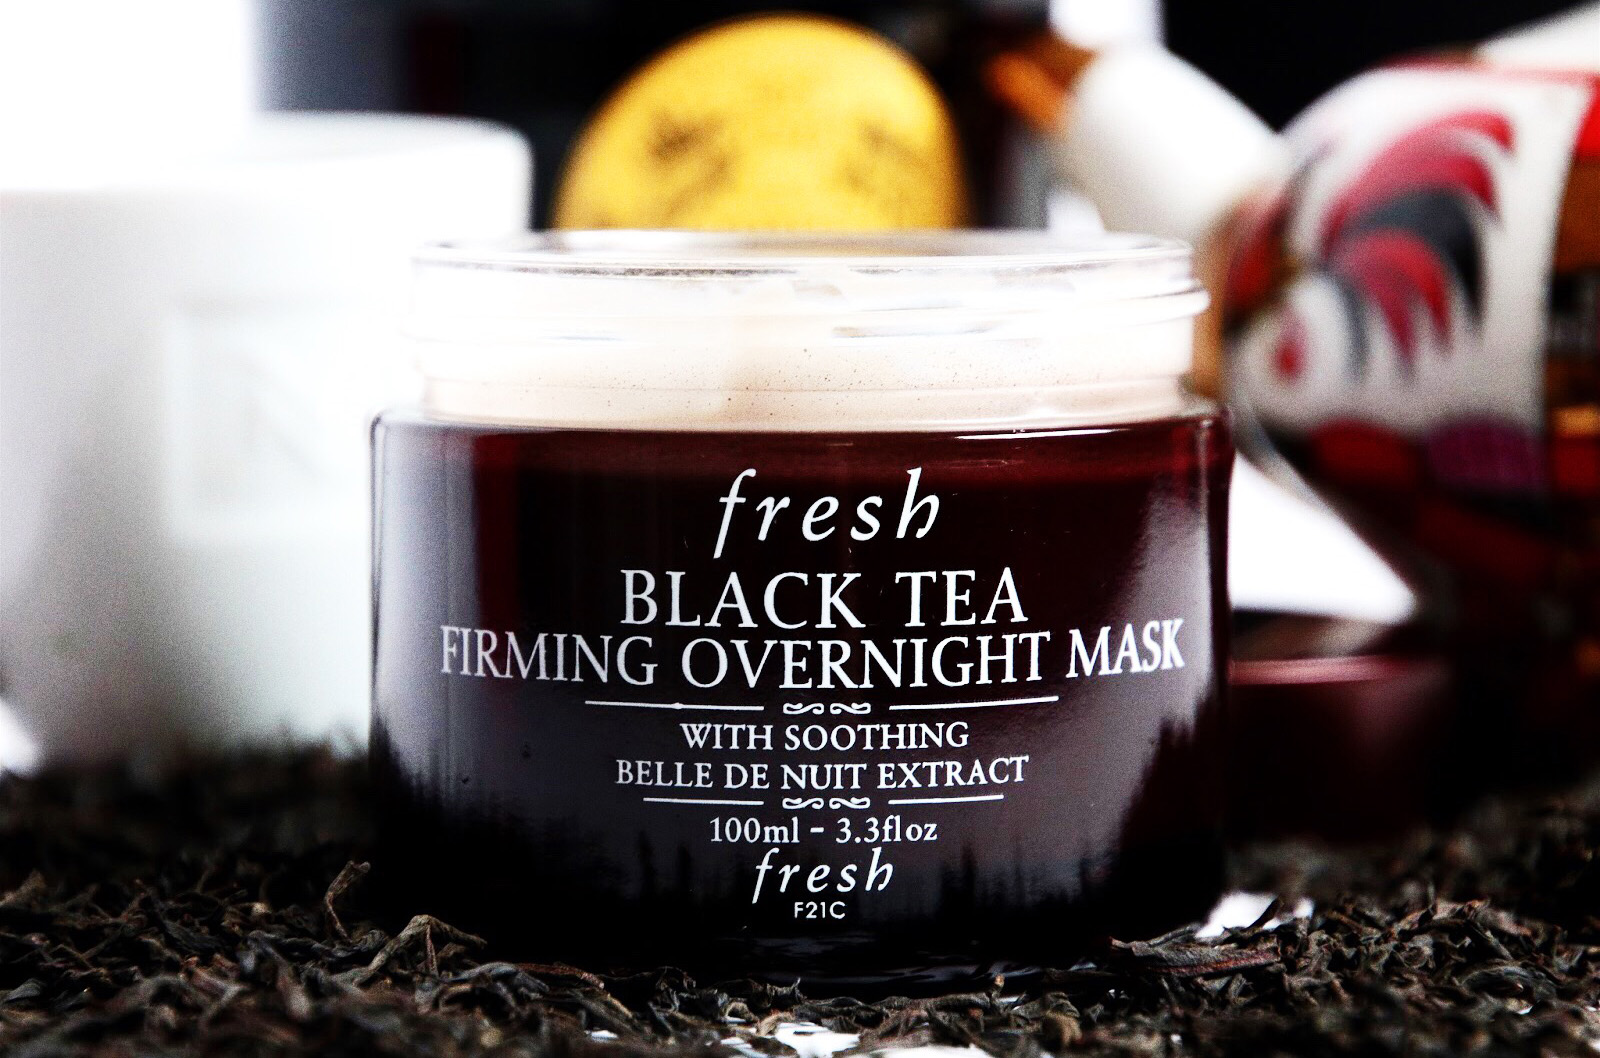 fresh black tea overnight firming mask masque de nuit raffermissant avis test